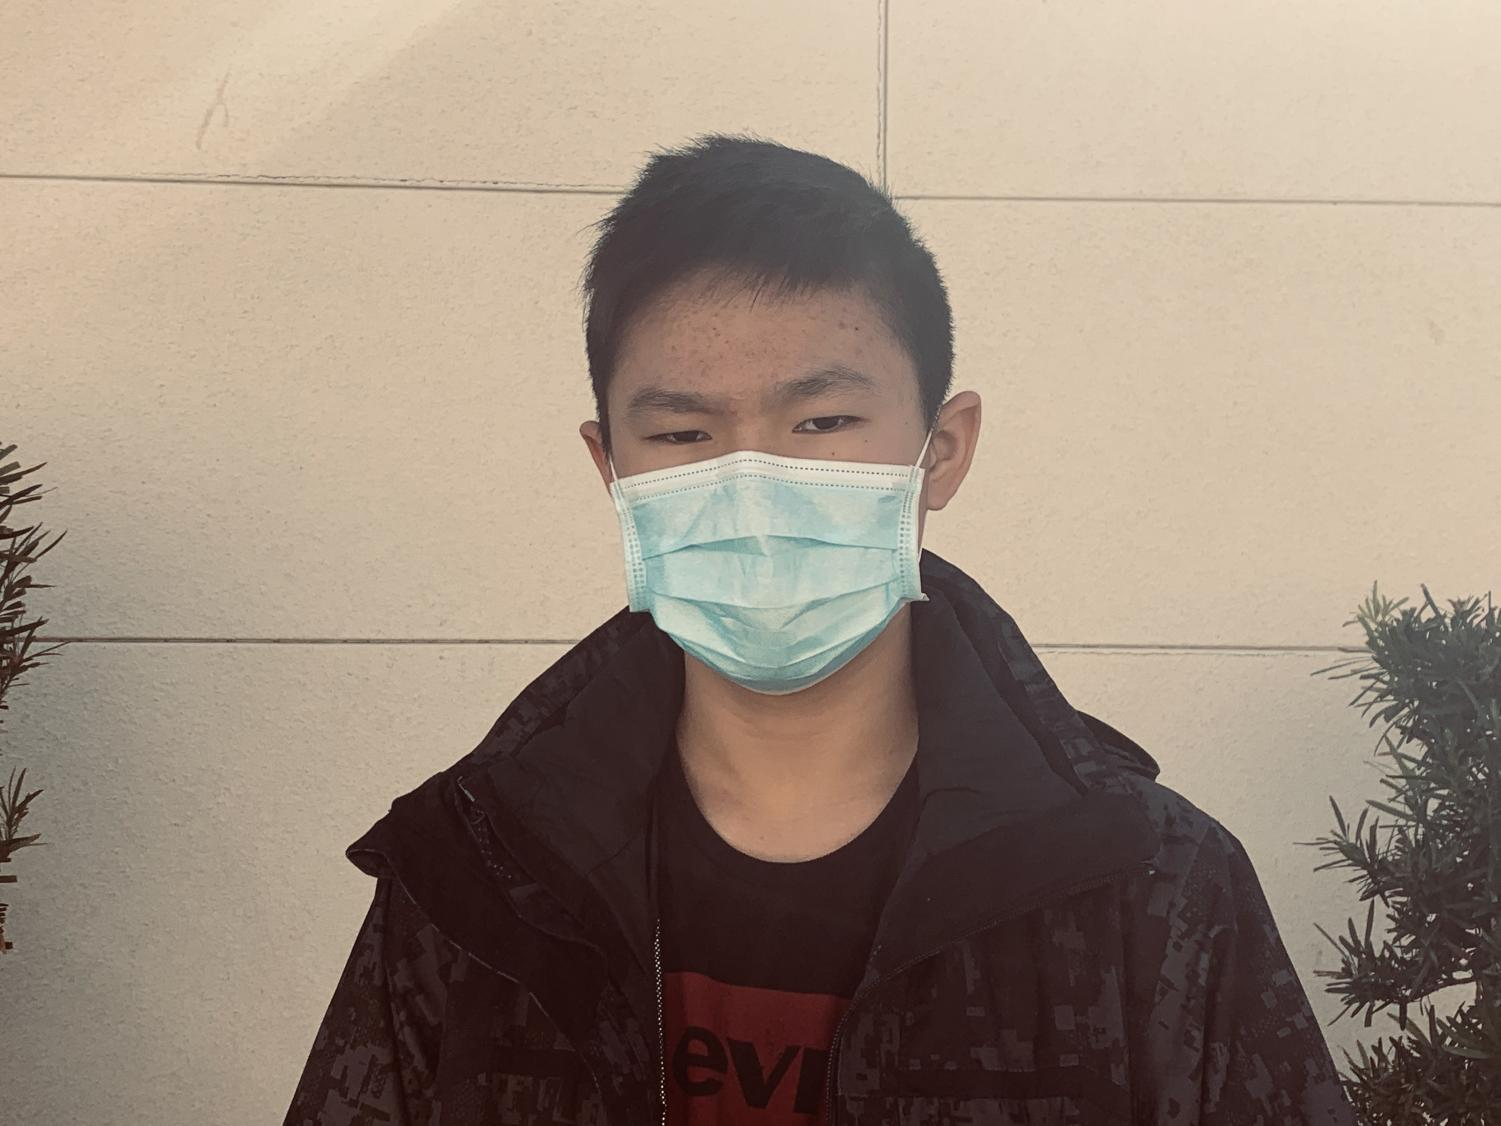 Many students, under one demograhic, have begun to wear masks in order to prevent the onset of the Coronavirus. However, it's become a reason for misunderstandings  and racism among Asian-American students.